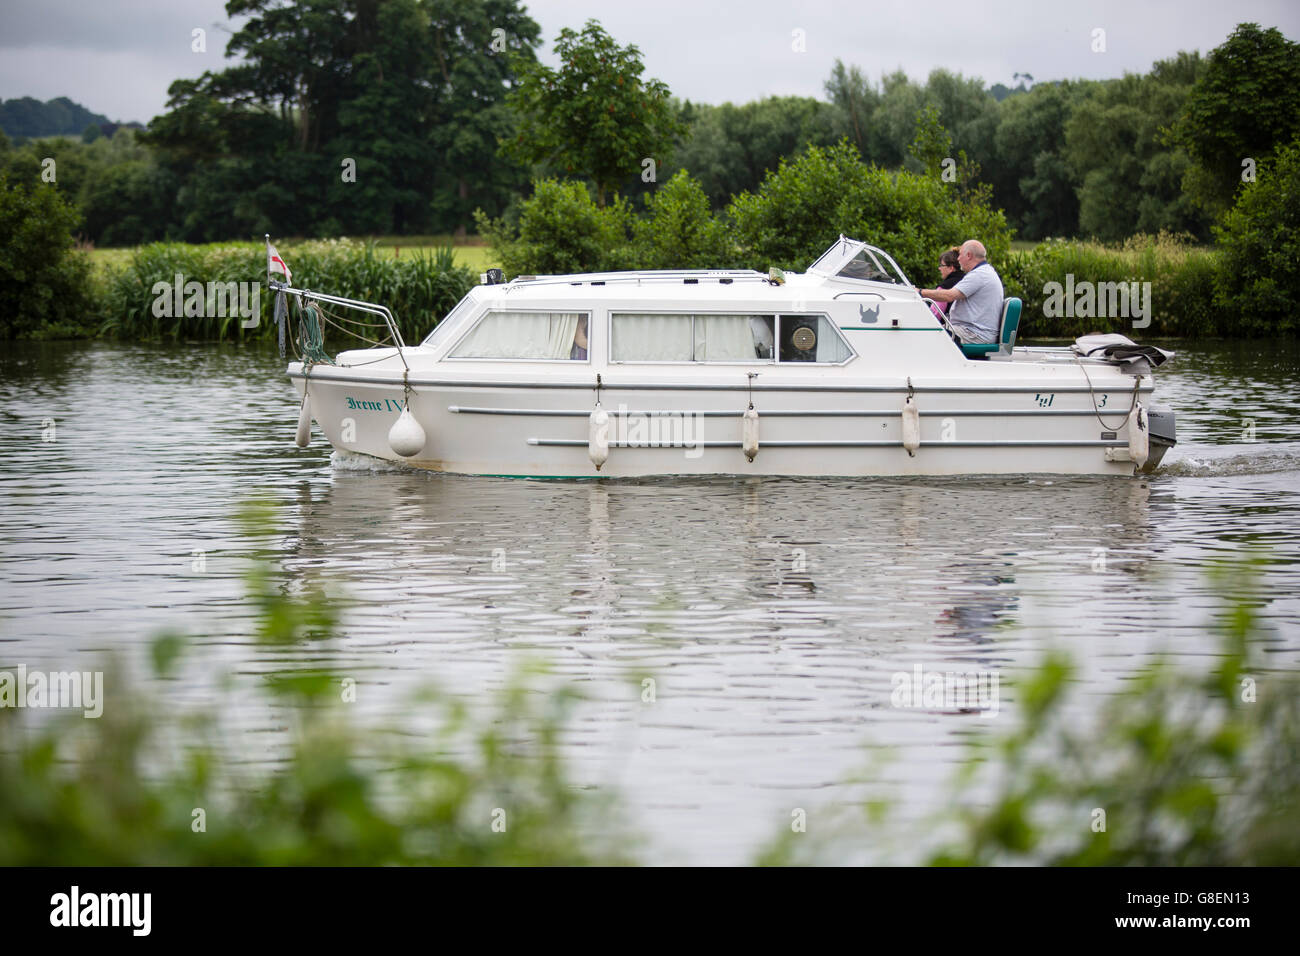 A small motor boat sailign on the river thames. - Stock Image